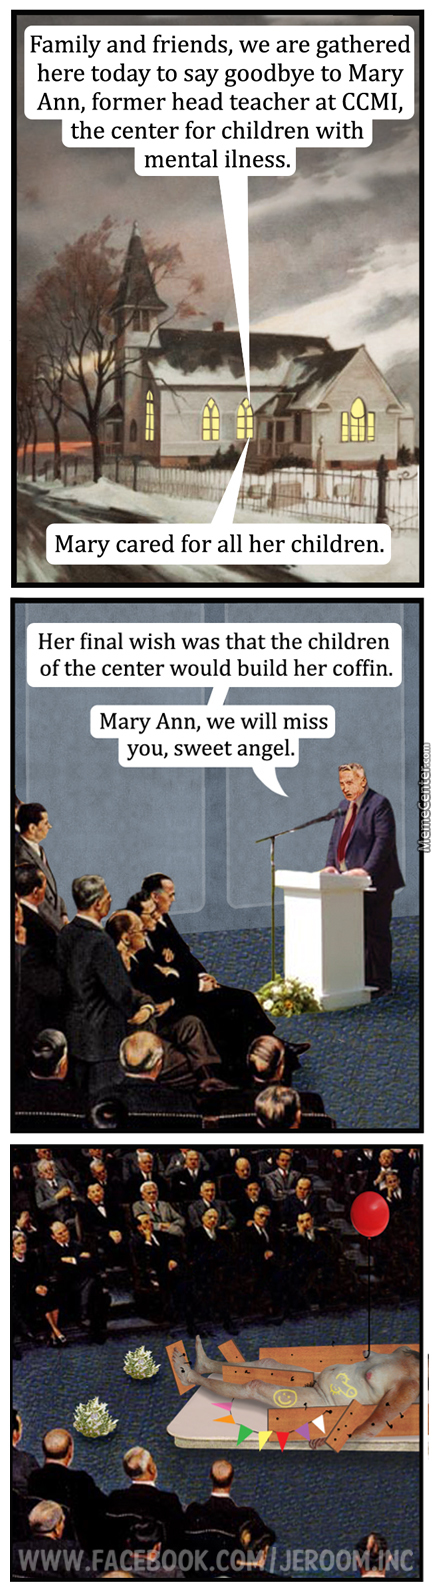 Goodbye, Mary Ann.